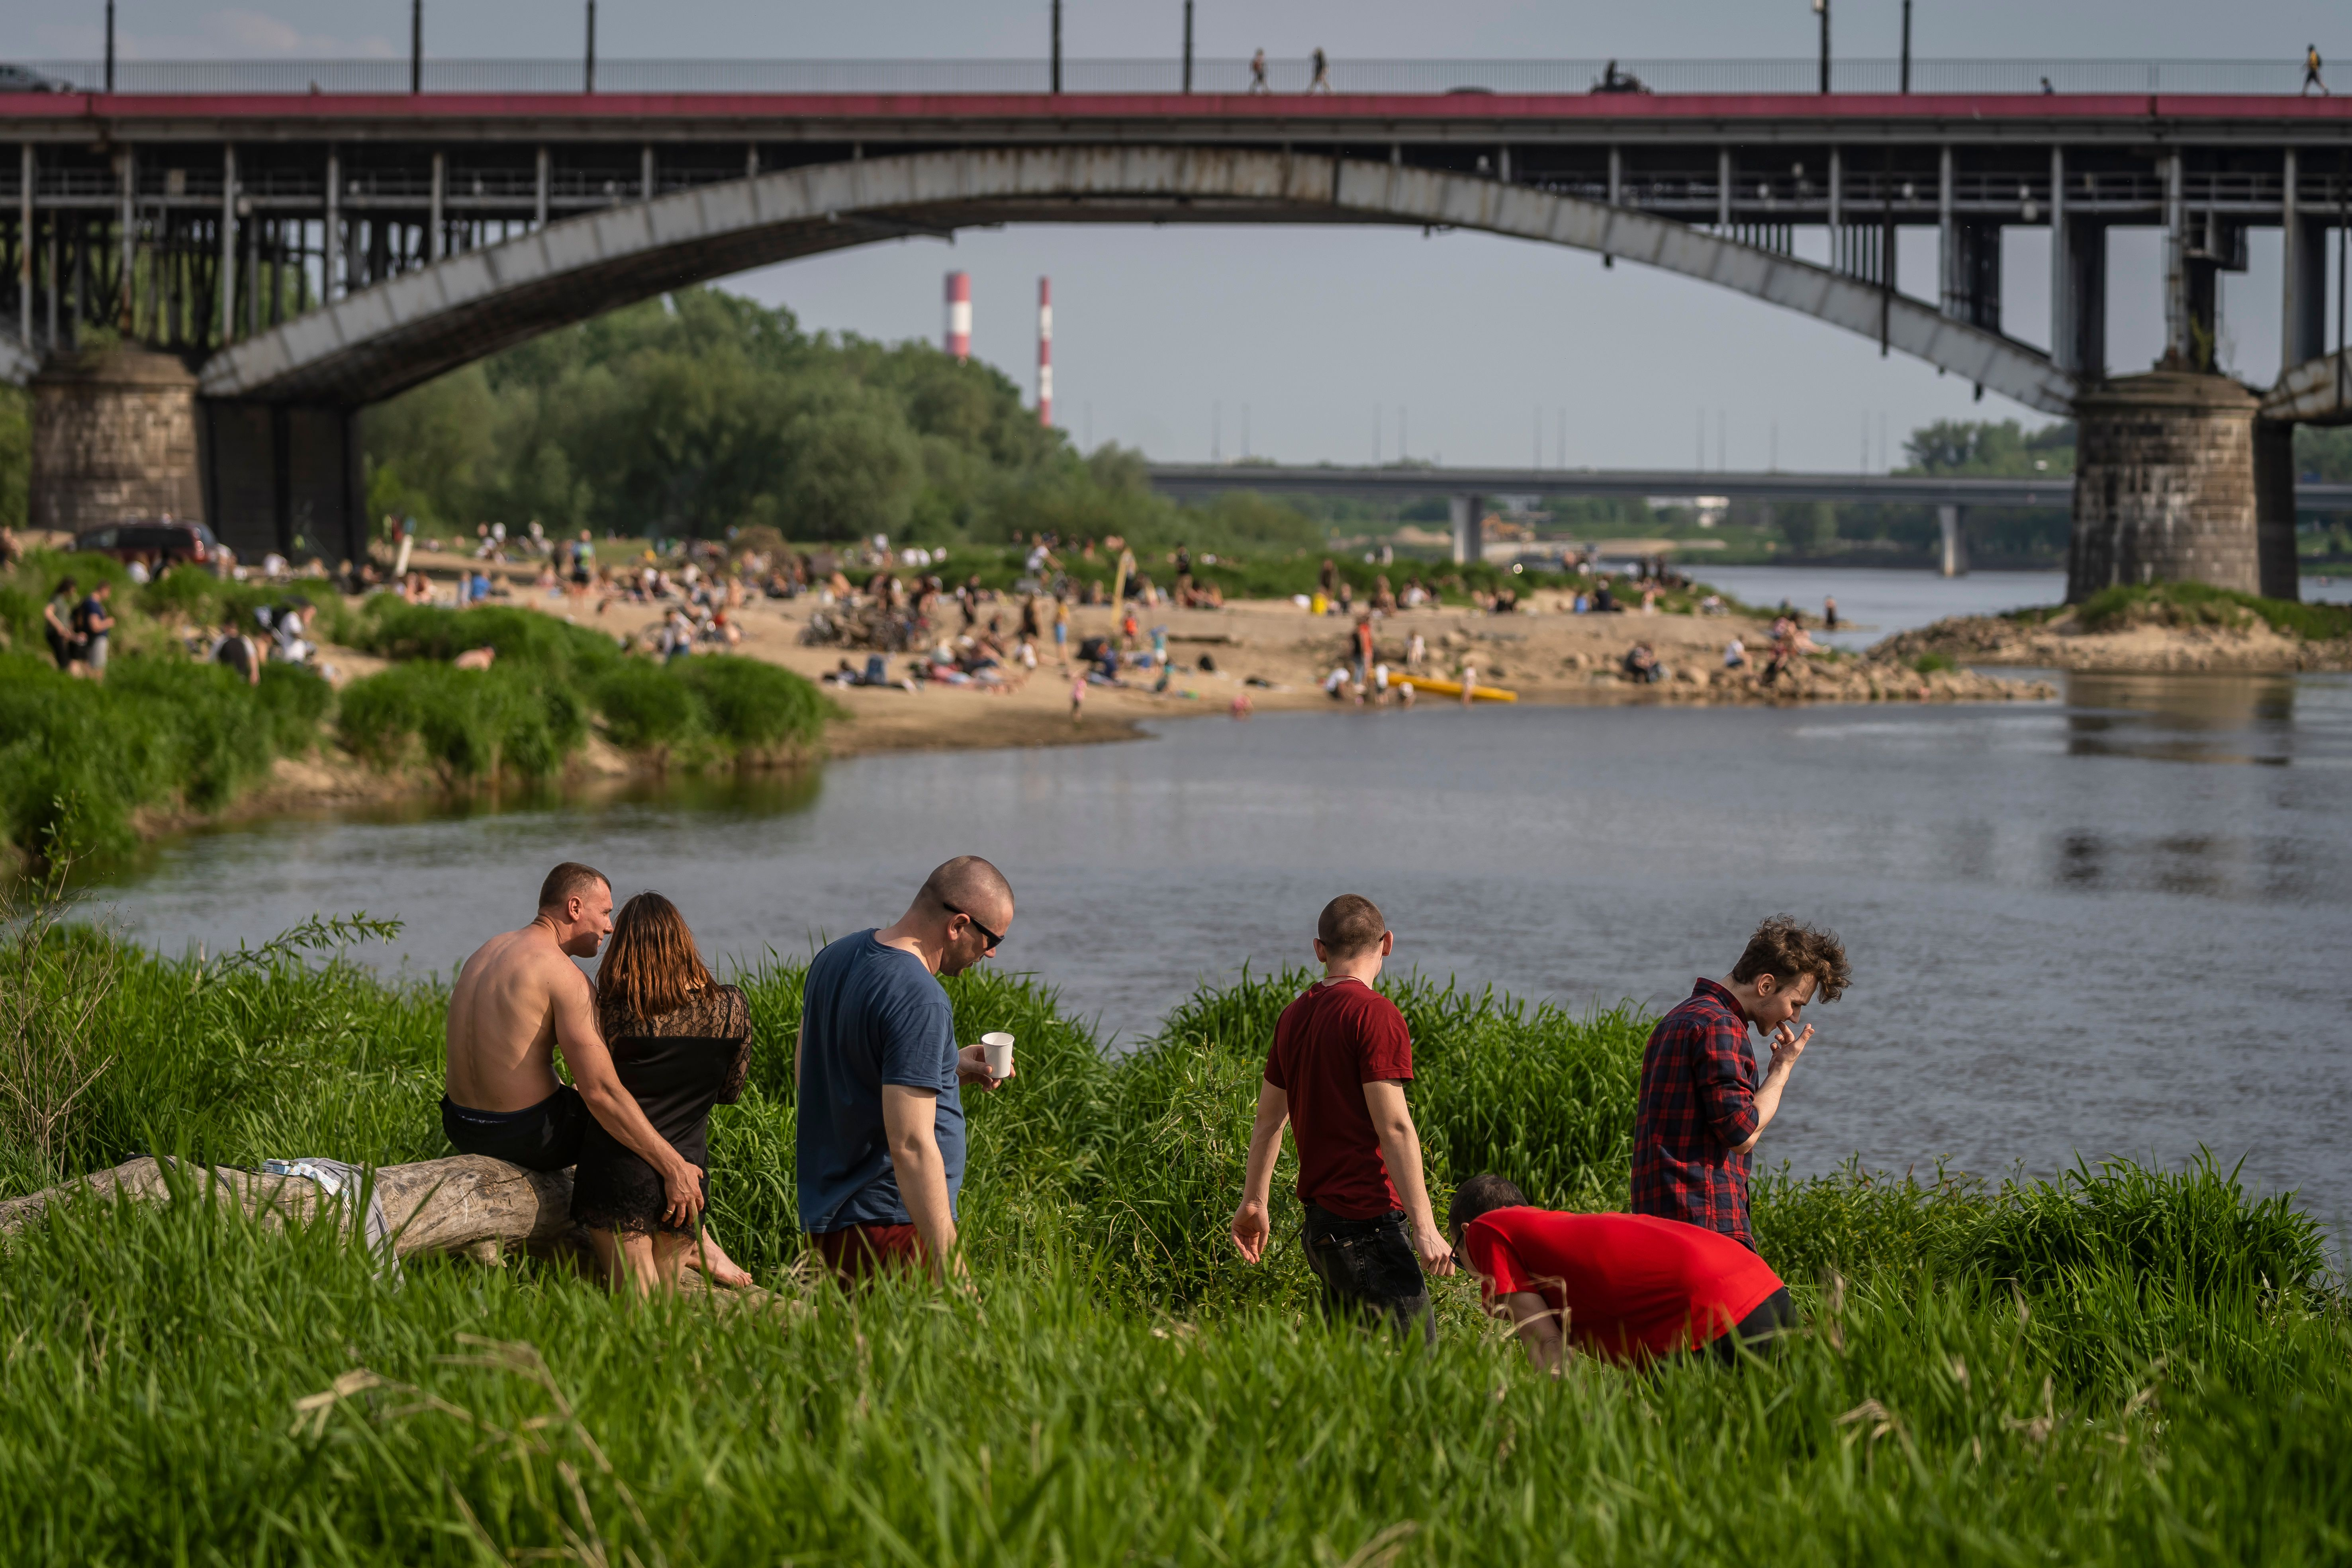 Warsaw residents gather on the bank of the Vistula River to enjoy the warm weather. (Photo by WOJTEK RADWANSKI/AFP via Getty Images)